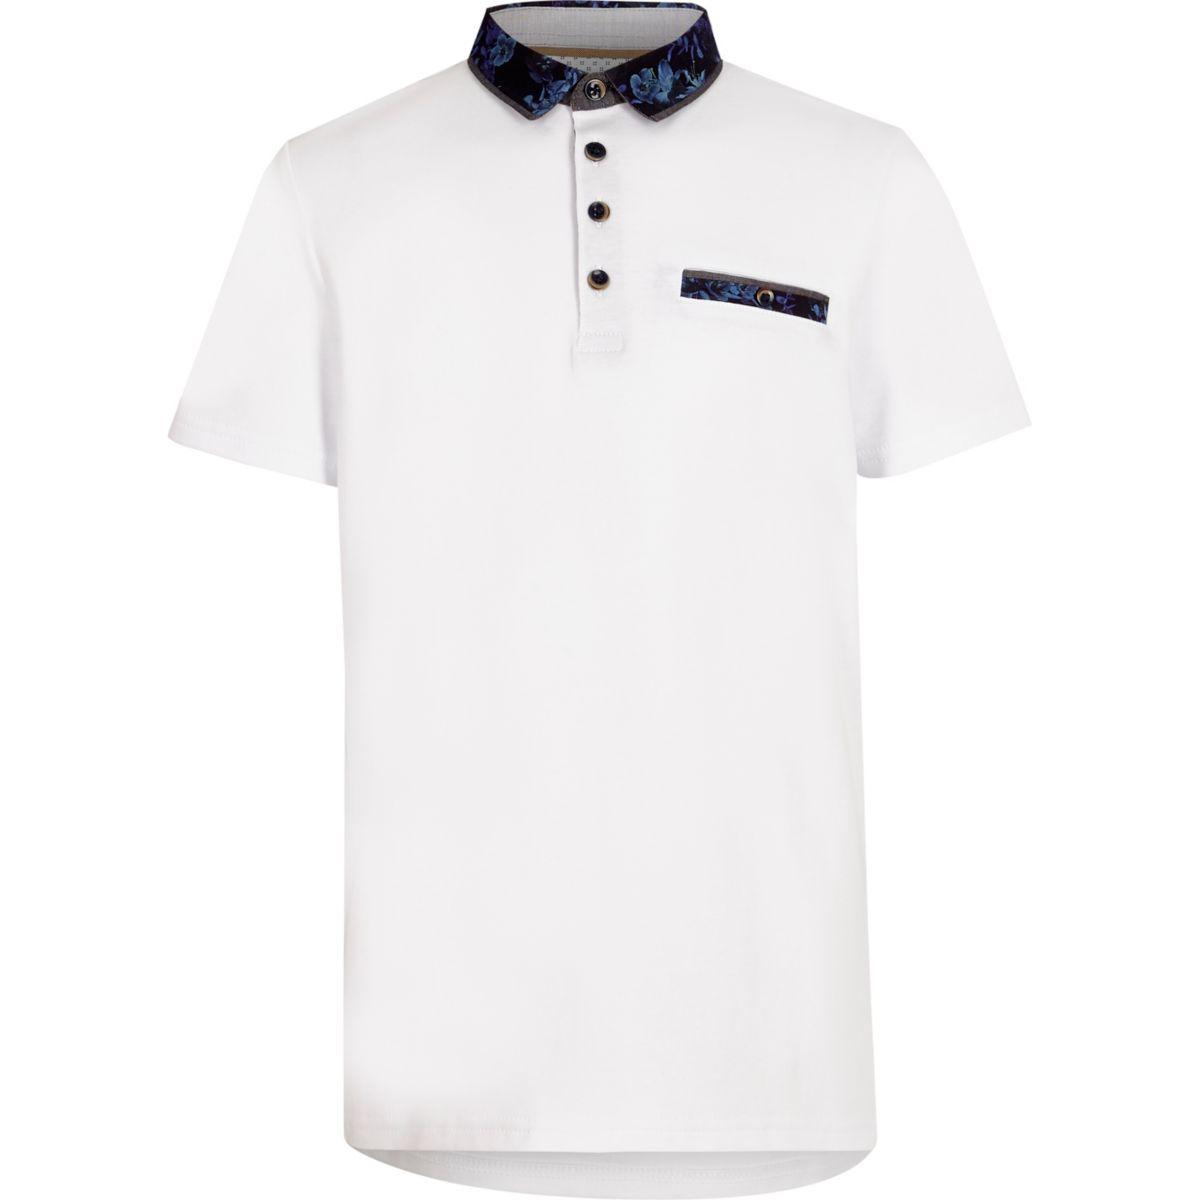 Boys white floral collar polo shirt